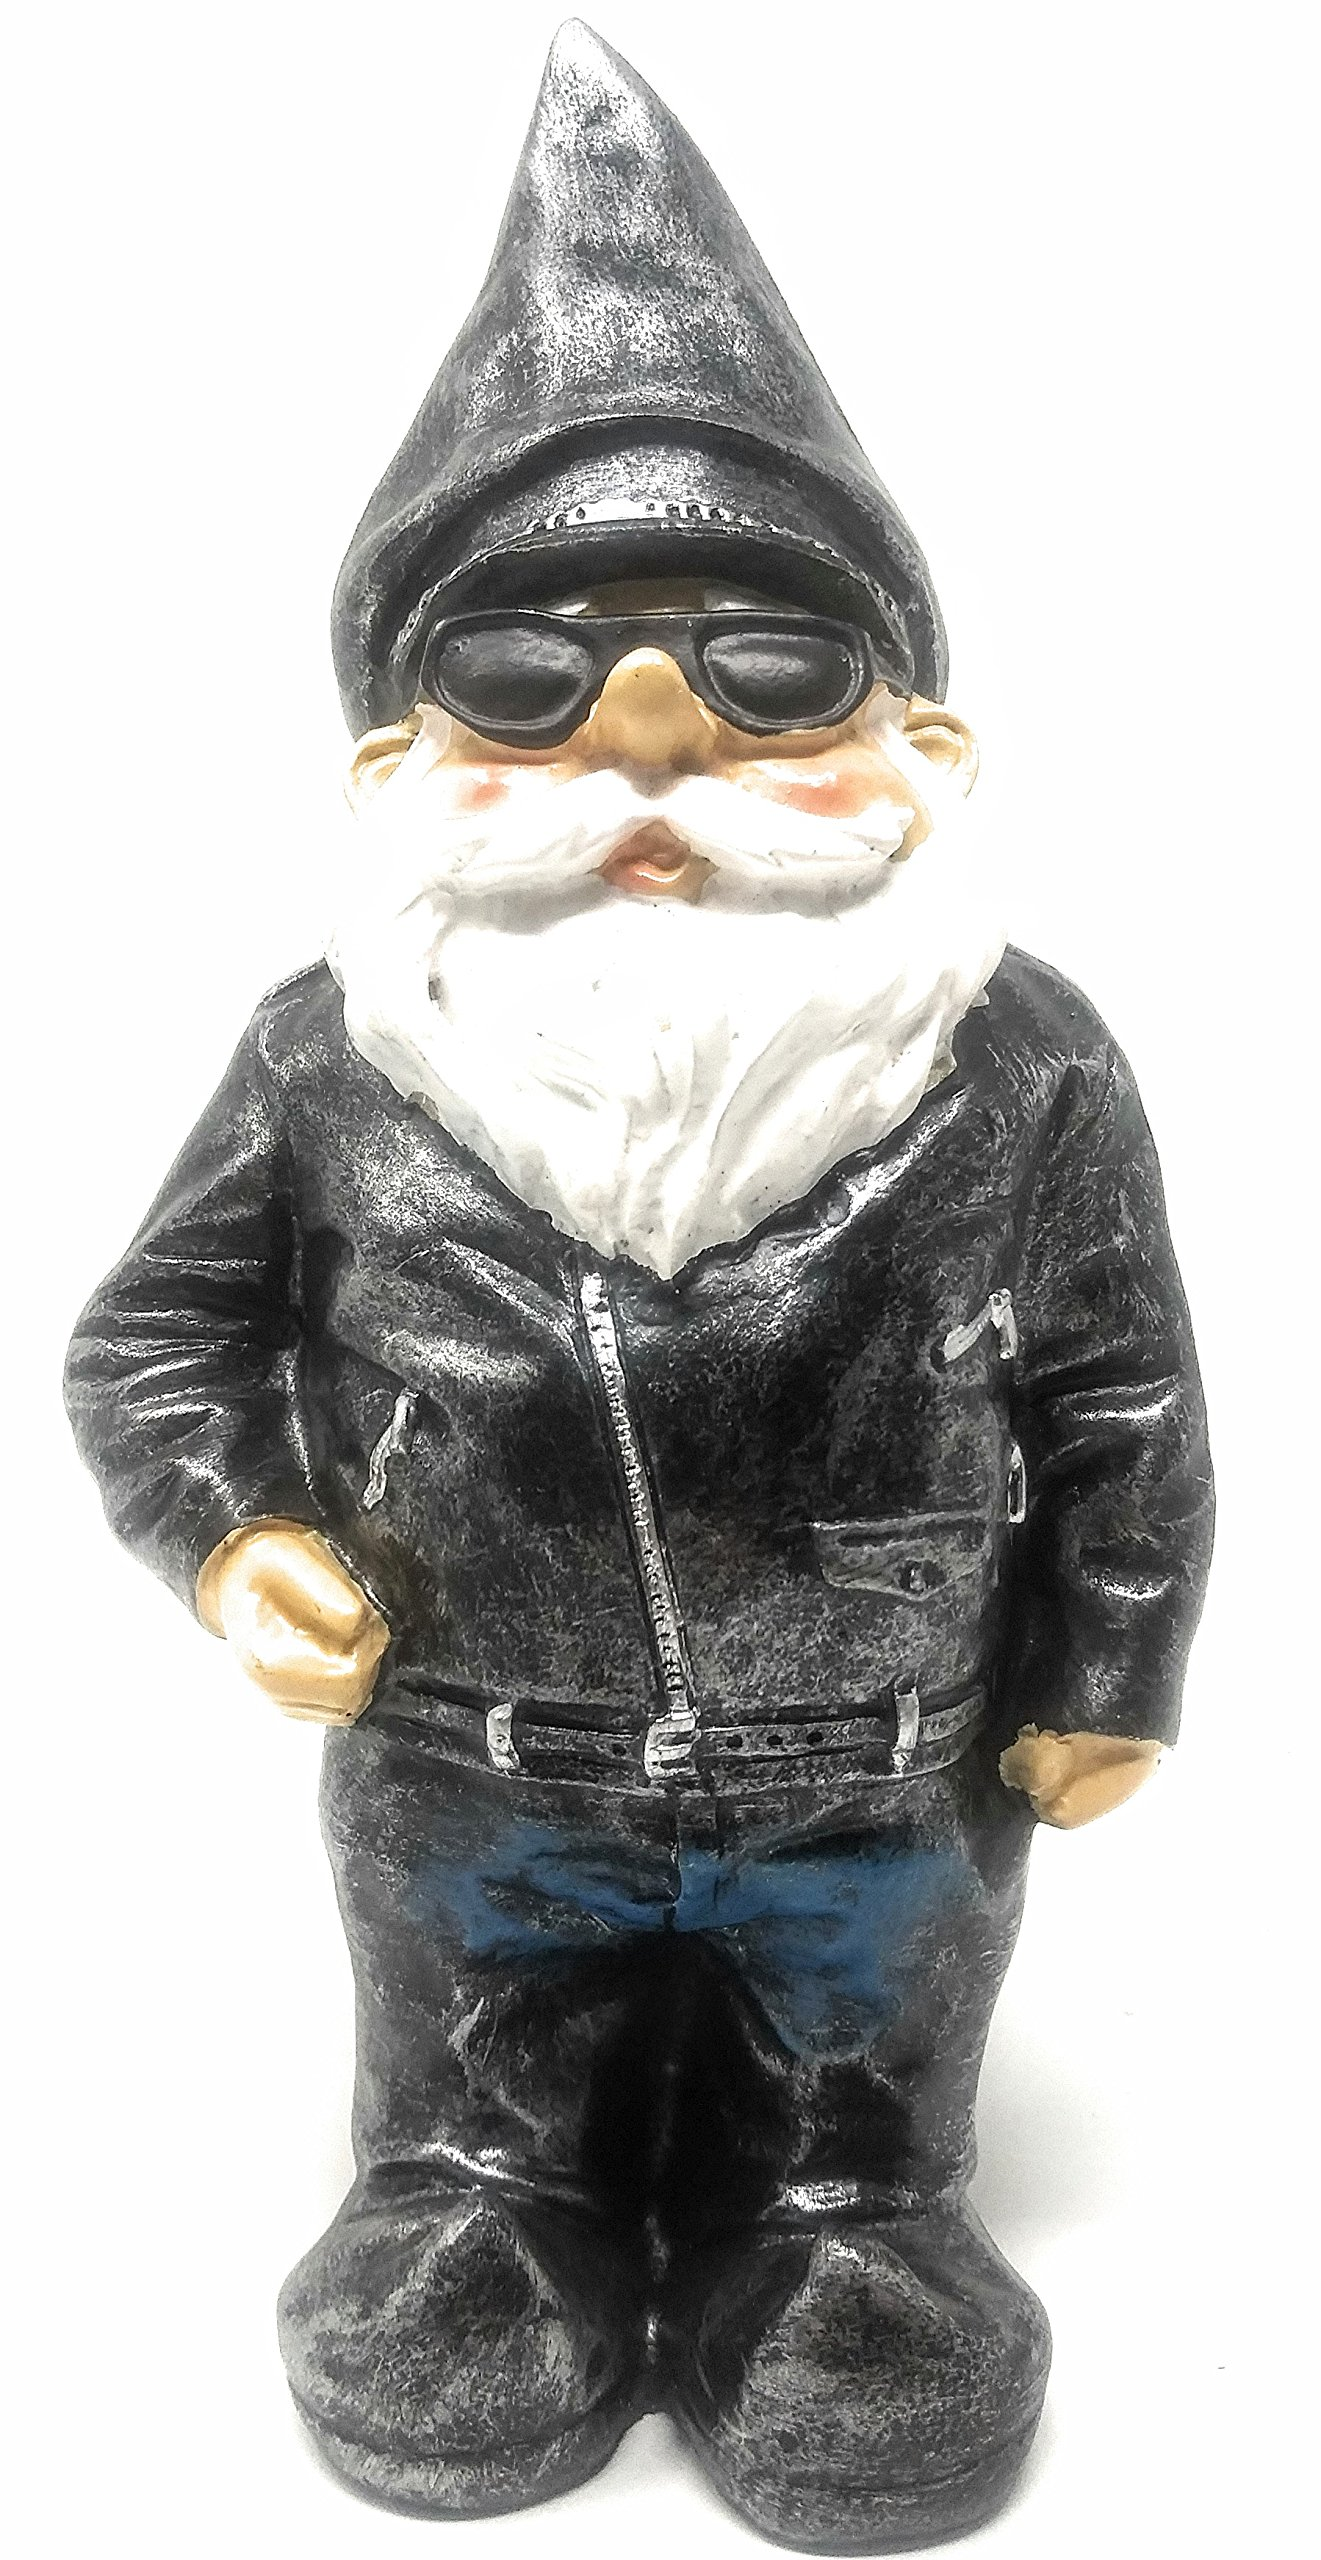 """Biker Garden Gnome Statue, Beautiful Attractive,Outdoor Garden Statute Dressed Smartly In Motorcycle Leather Jacket – Perfect Garden Display, Cool Idea For Your Yard Or As Gift, 8-3/4"""" High"""